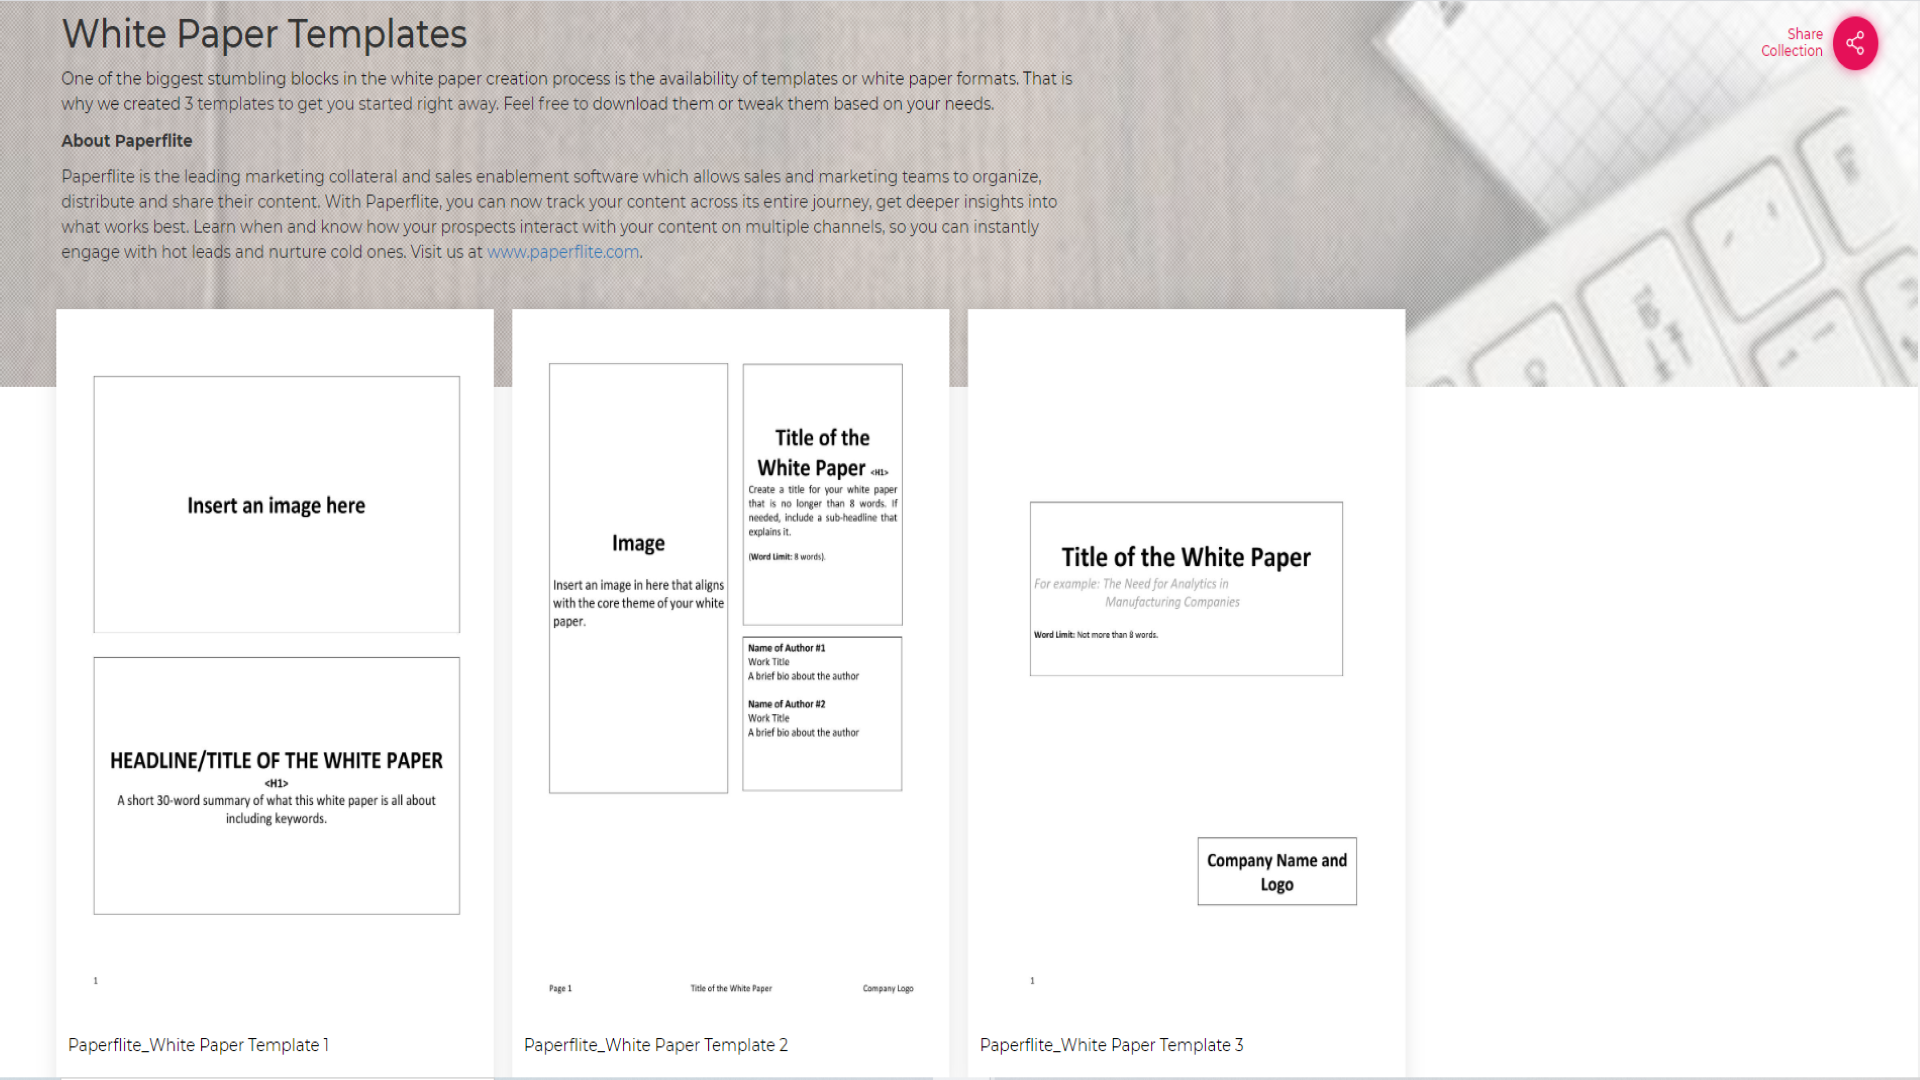 The Best WhitePaper Templates